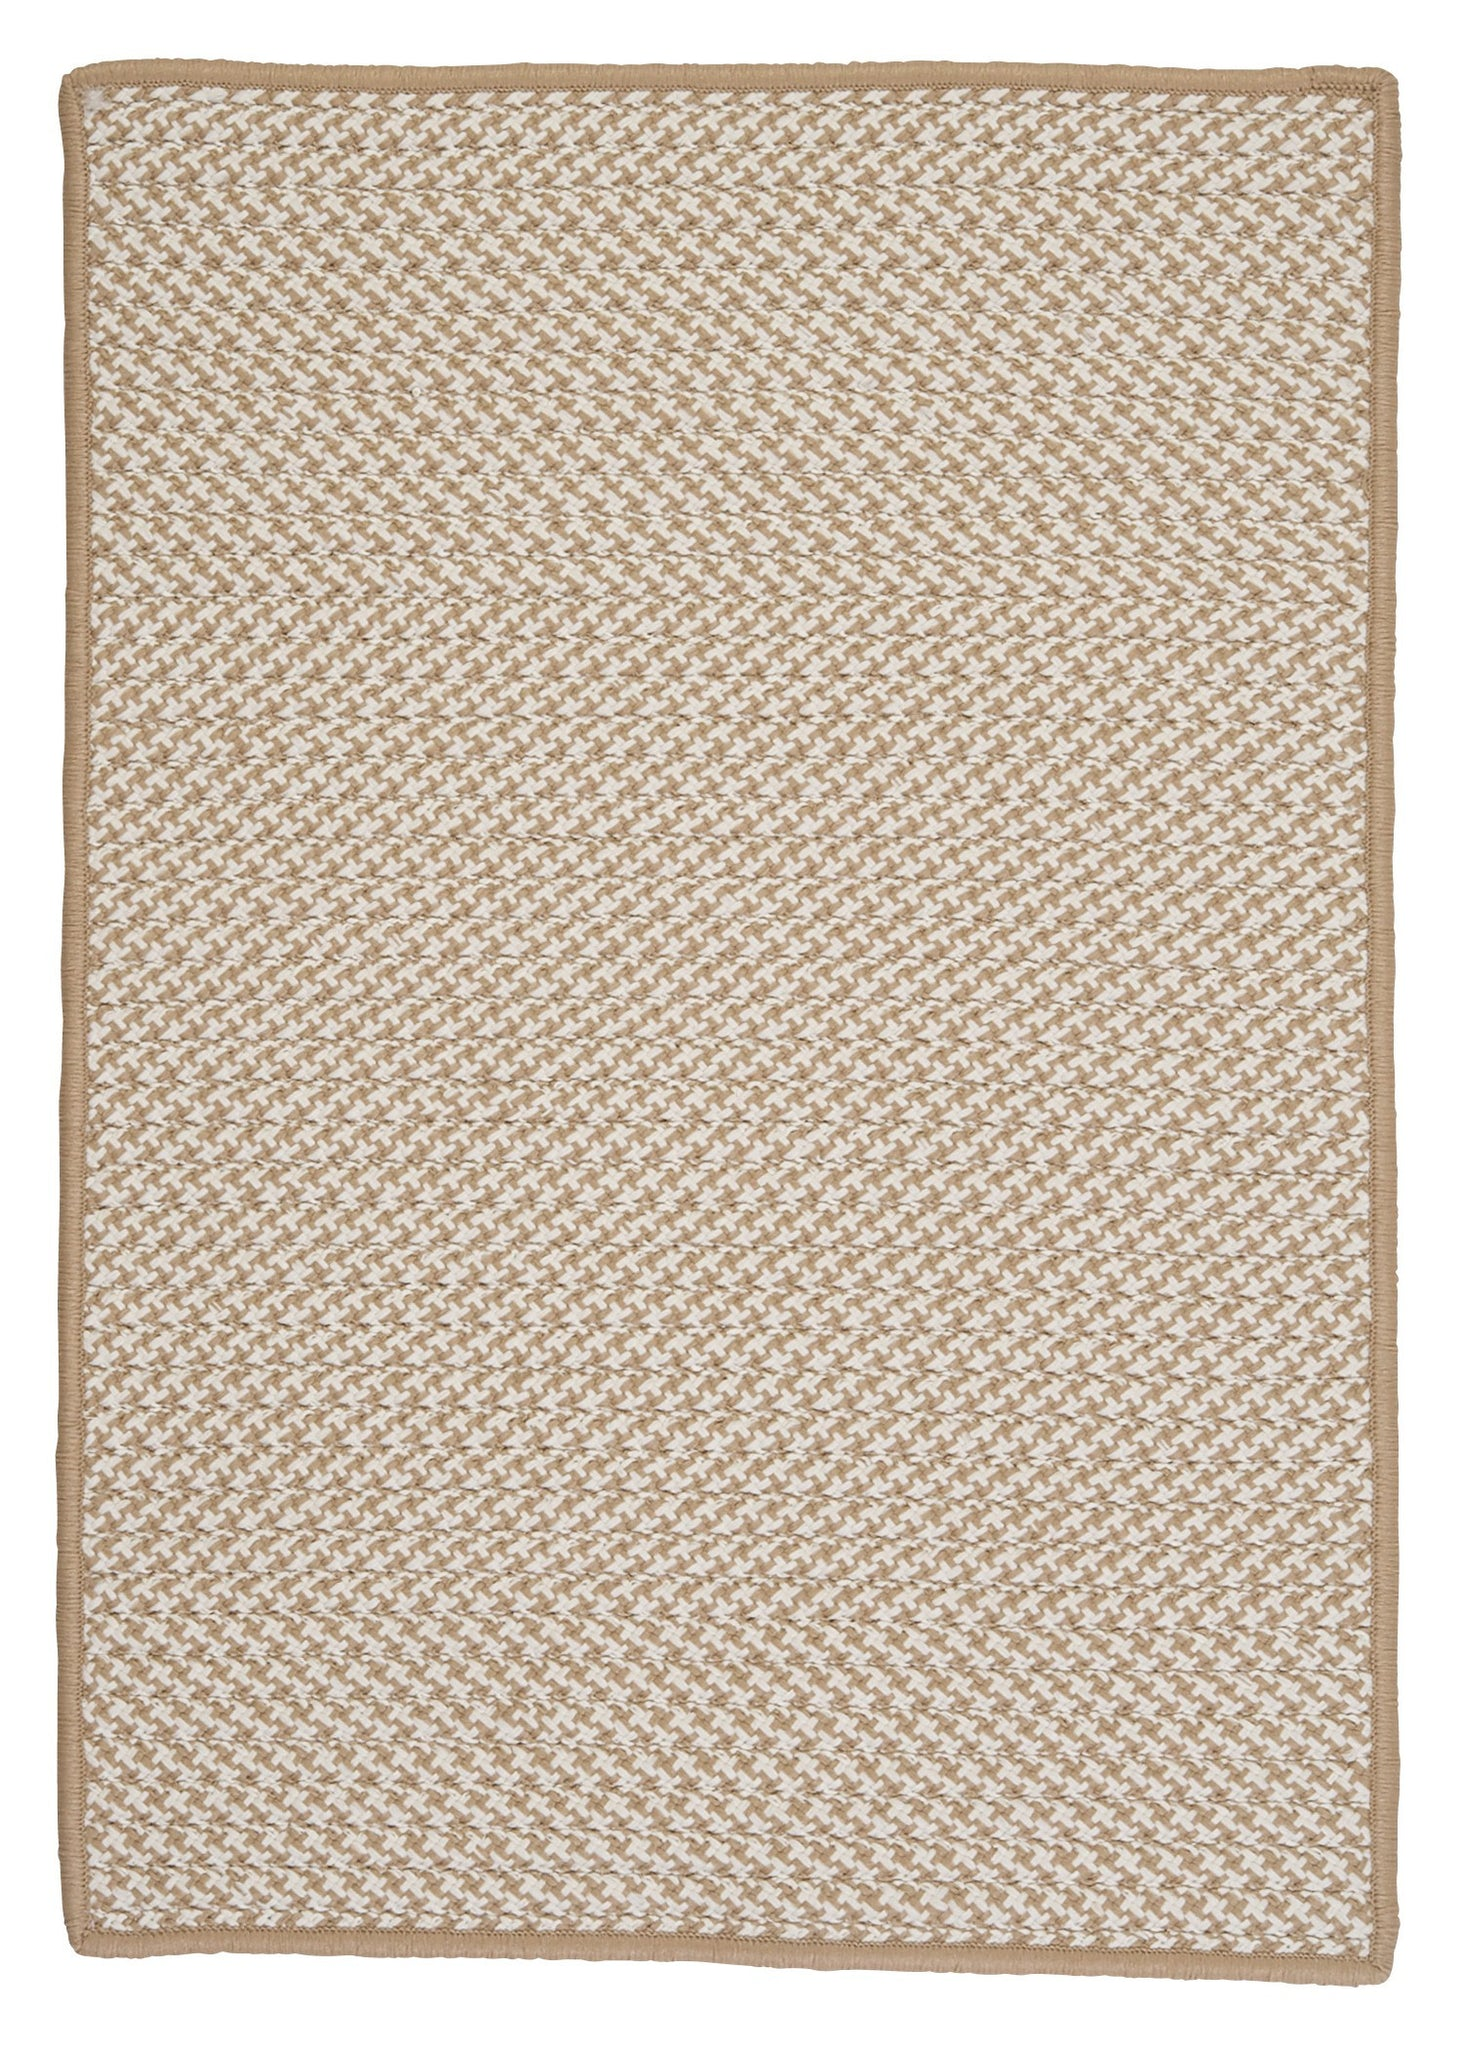 Colonial Mills Outdoor Houndstooth Tweed Ot89 Cuban Sand